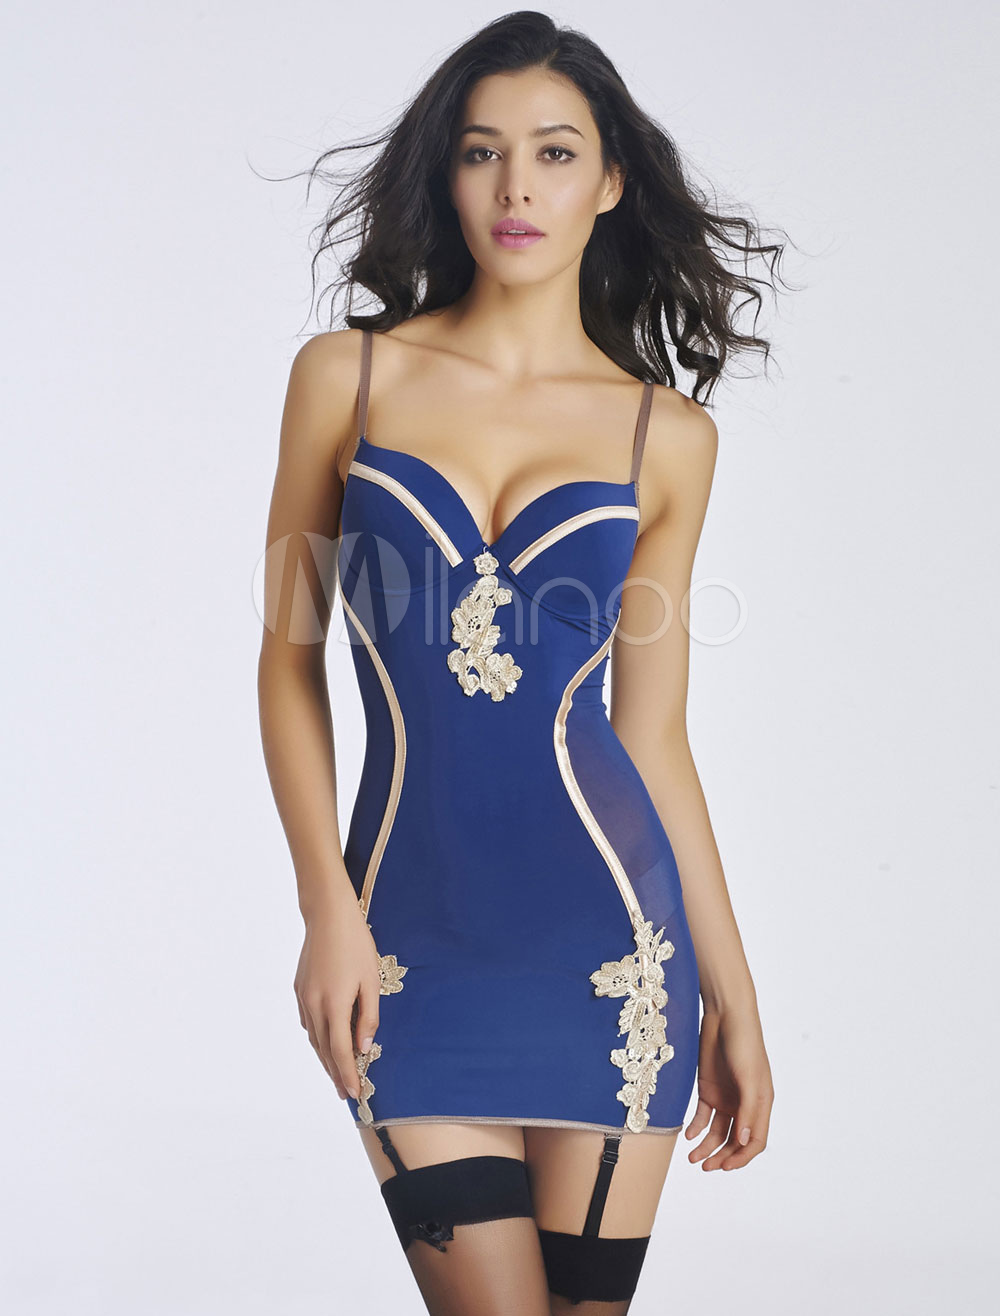 Blue Straps Chemis Embroidered Backless Chemise For Women